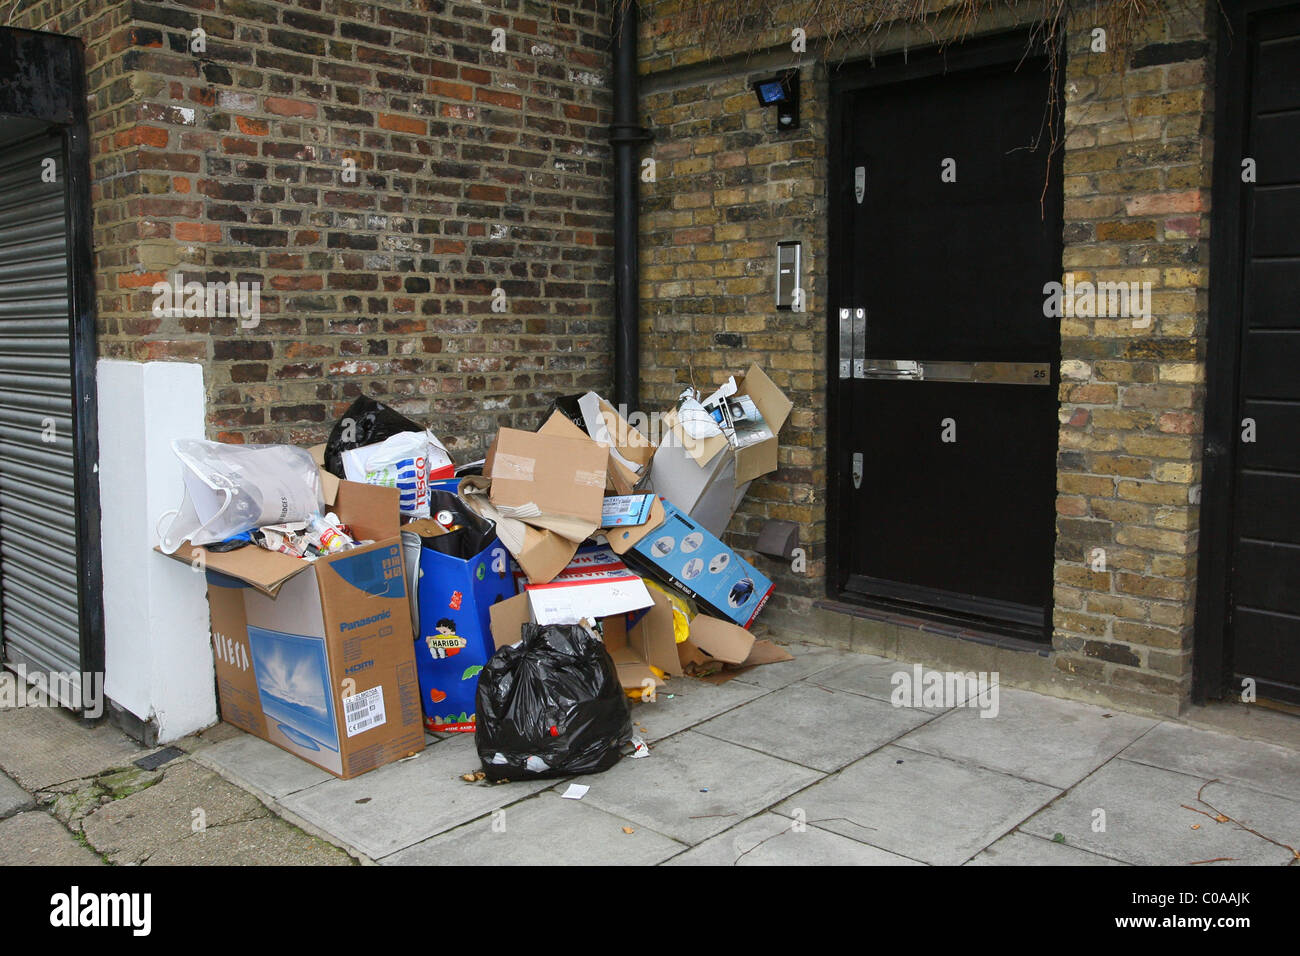 Rubbish Staking Up Outside The Front Door The Amy Winehouseu0027s New Home  Which Includes An Empty Box For A New HD TV, New Vacuum